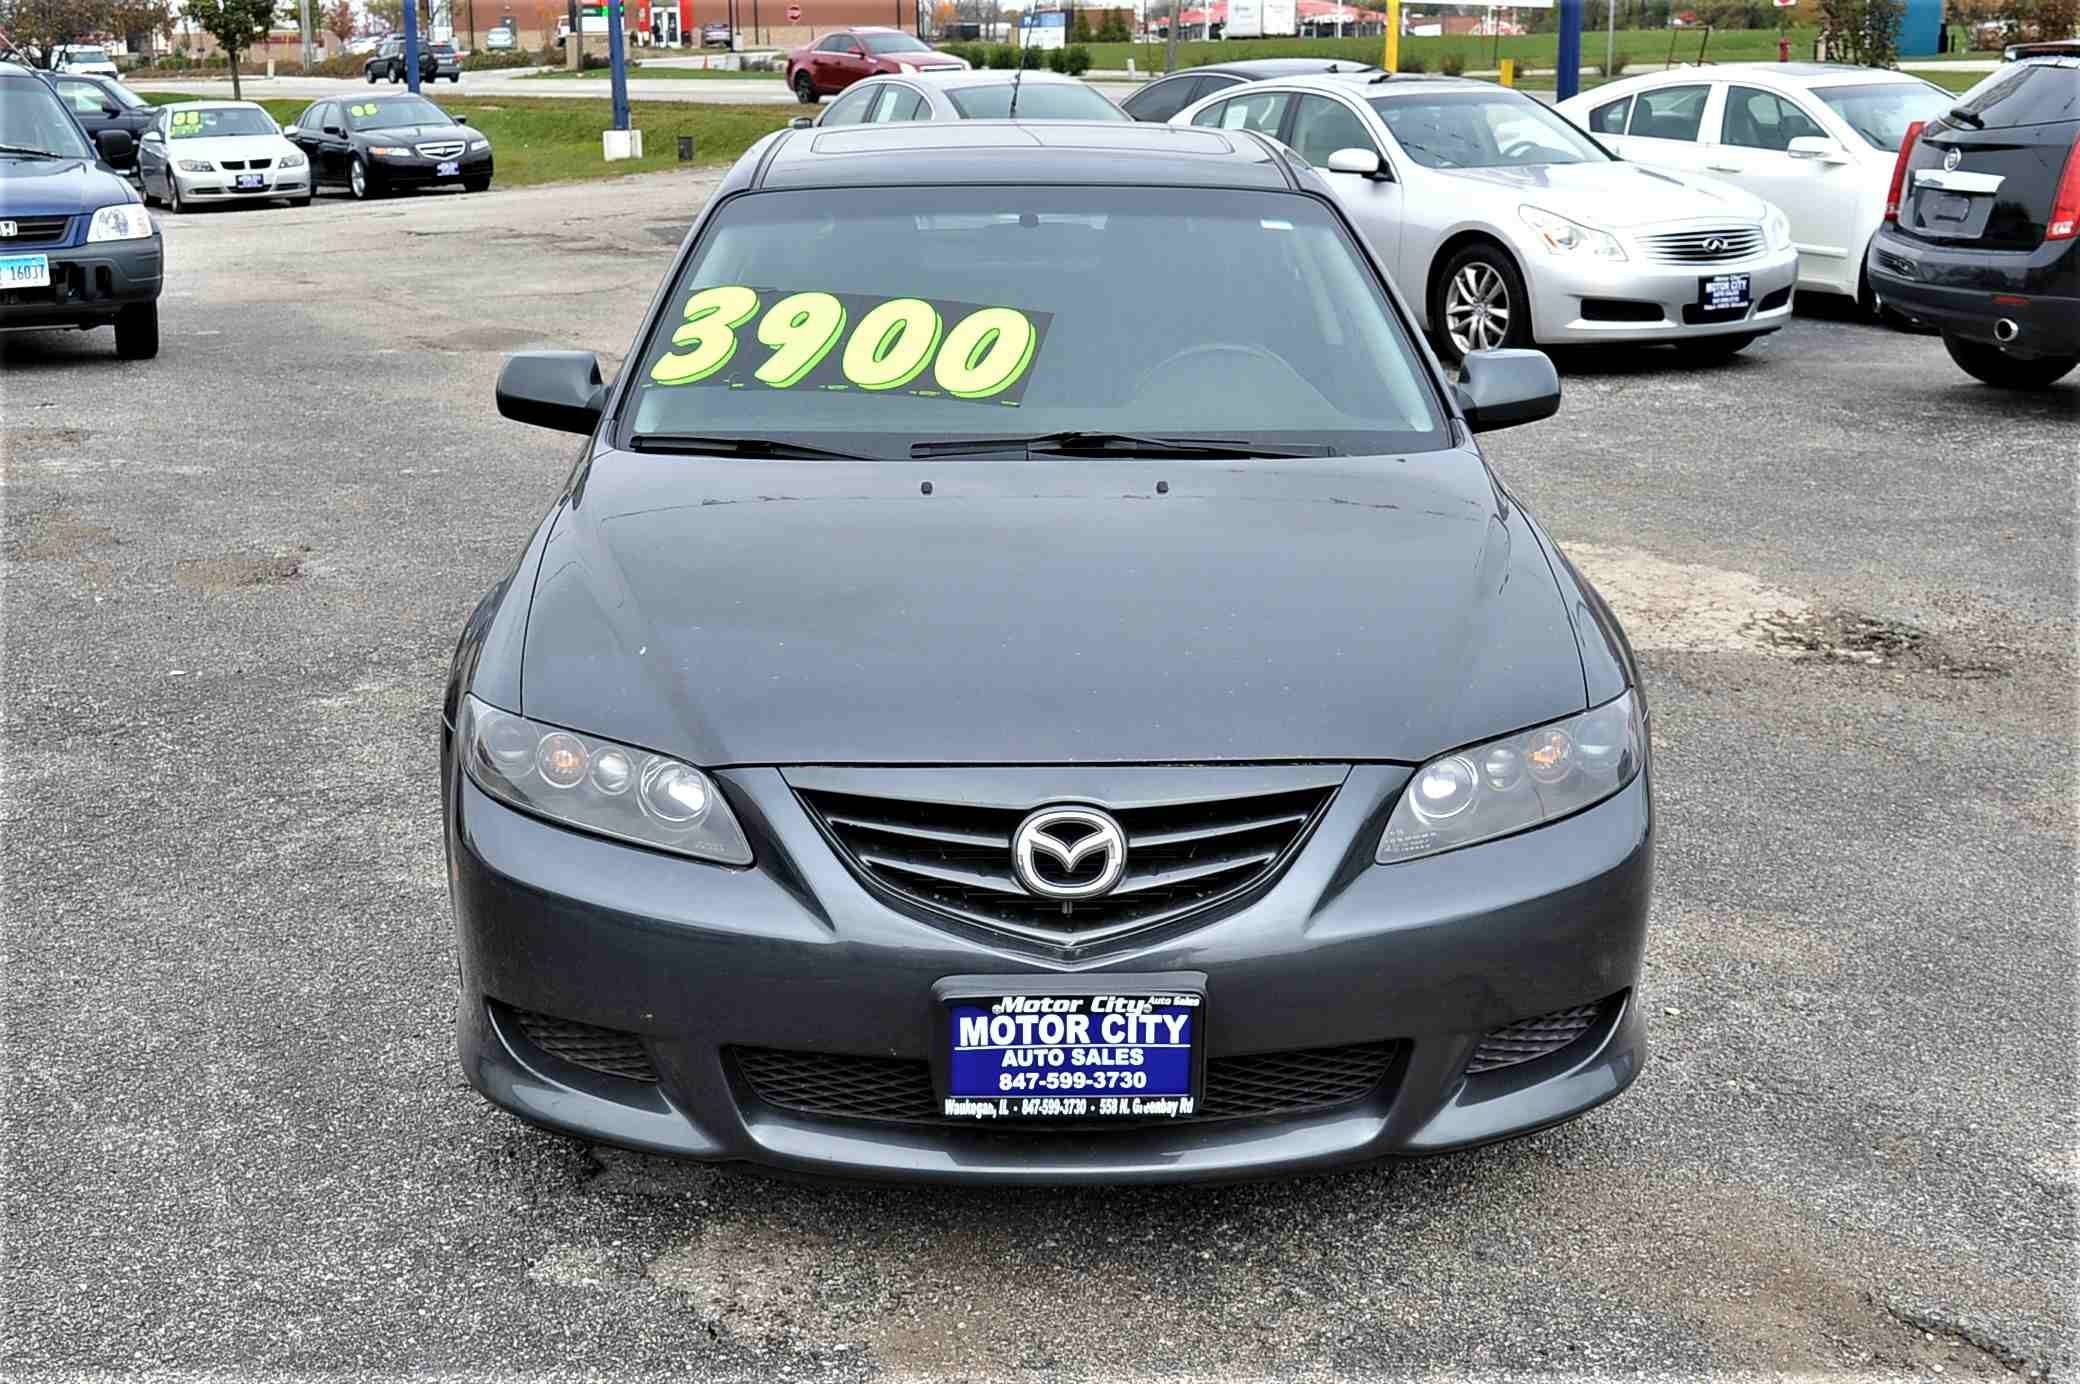 2004 Mazda 6 Gray Sedan Sale Used Car Sale Gurnee Kenosha Mchenry Chicago Illinois